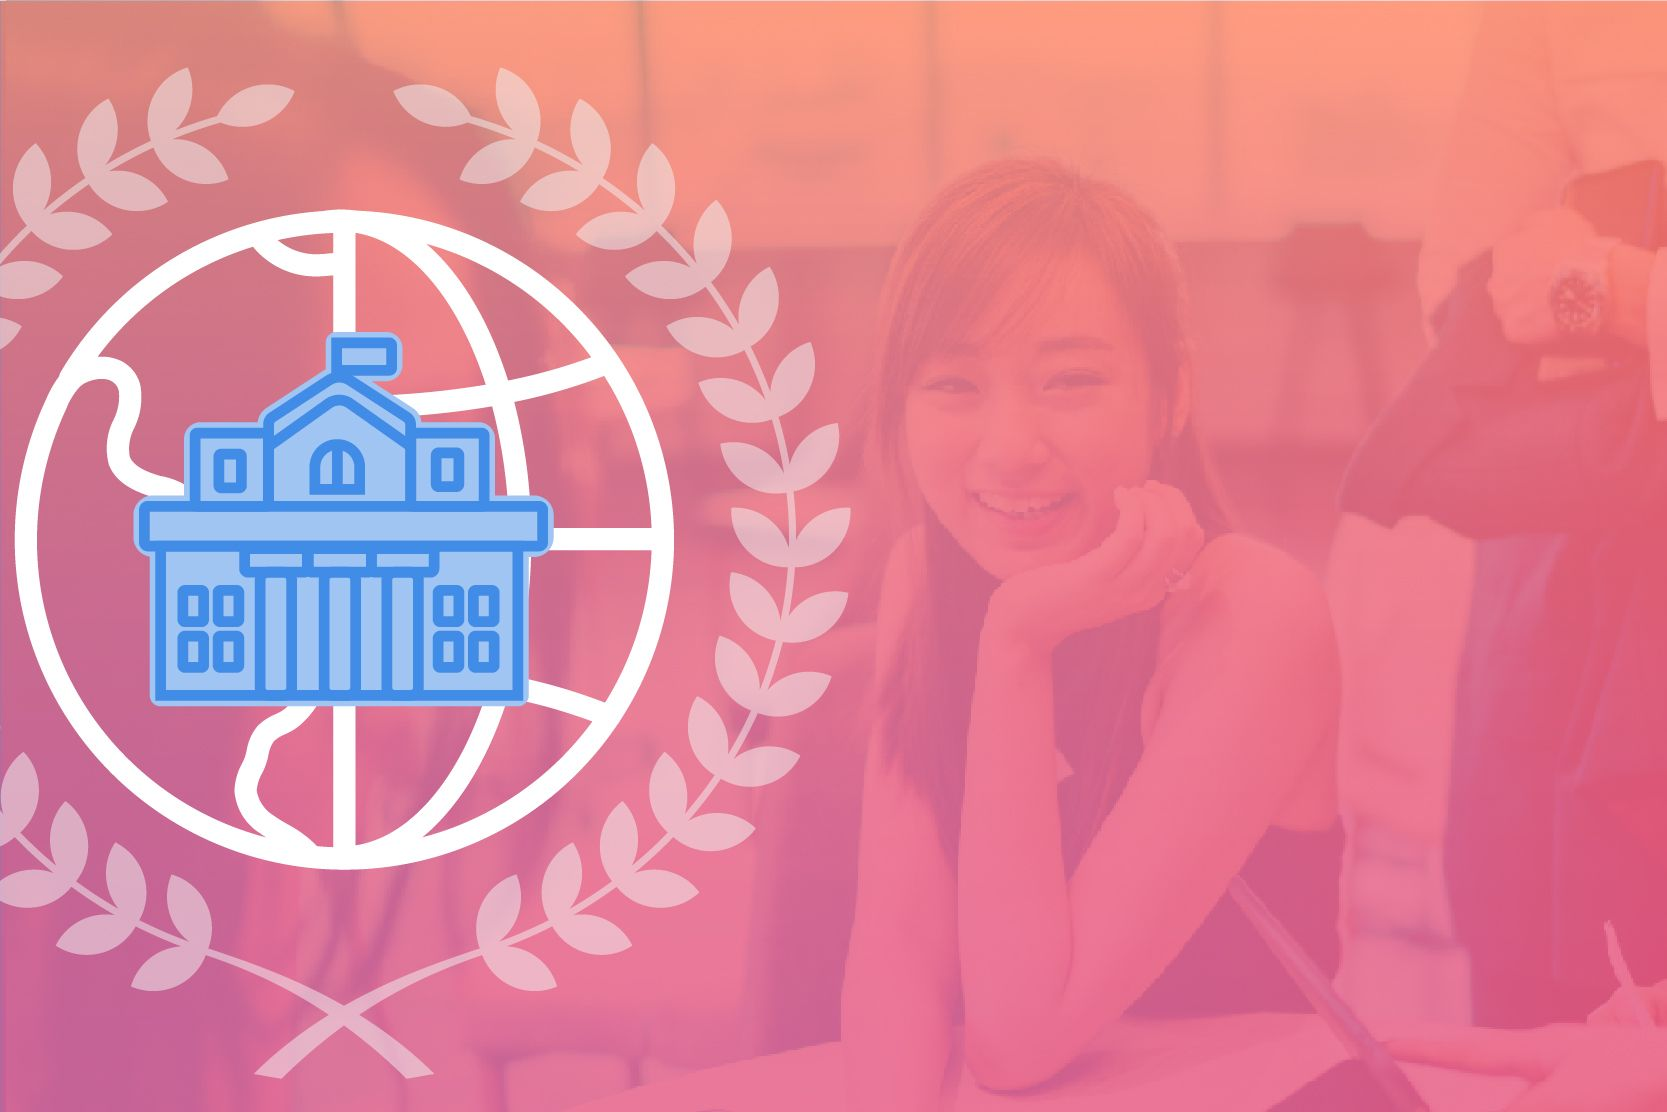 Learn more about British International Schools